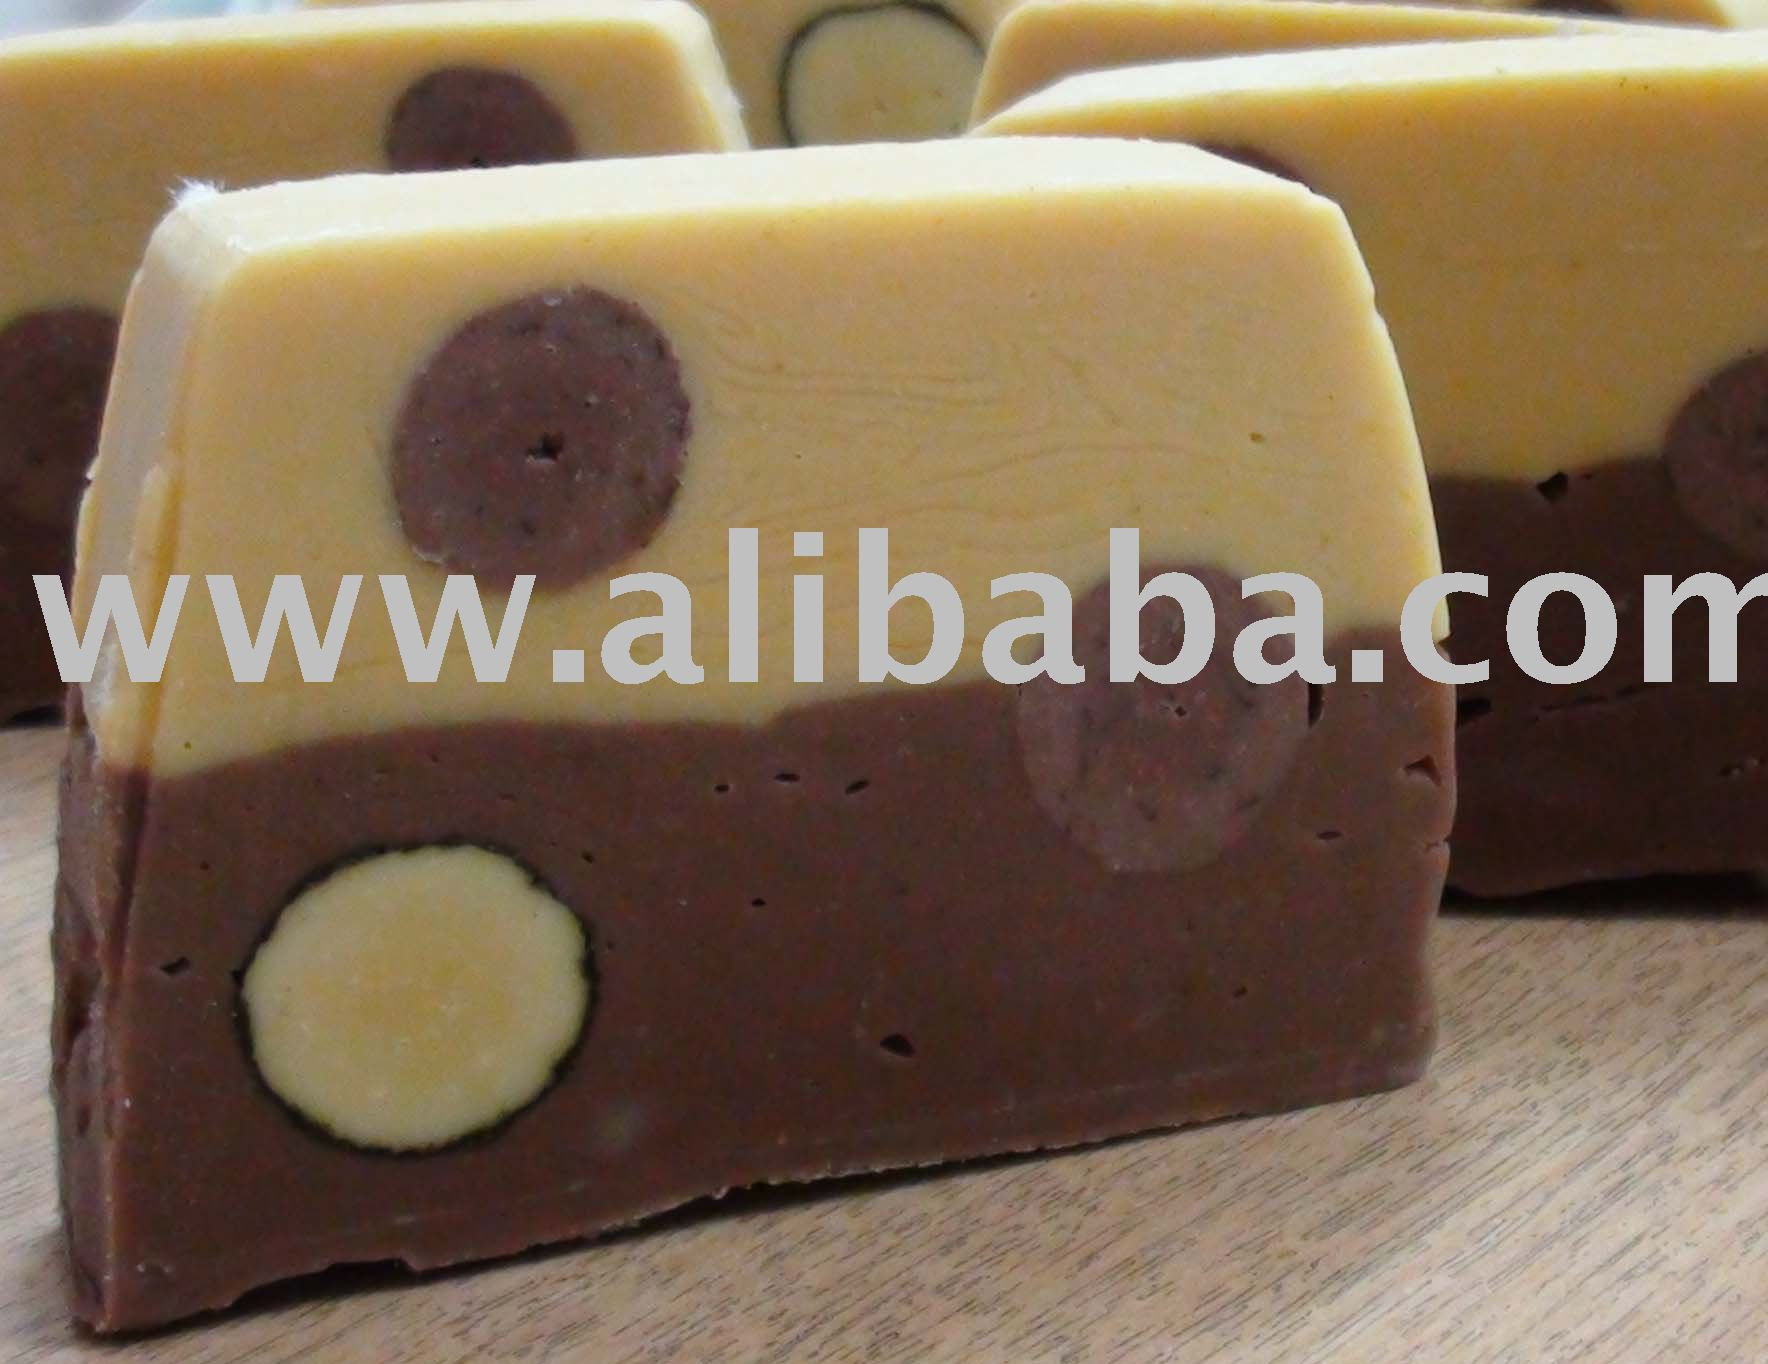 Banana and cocoa soap